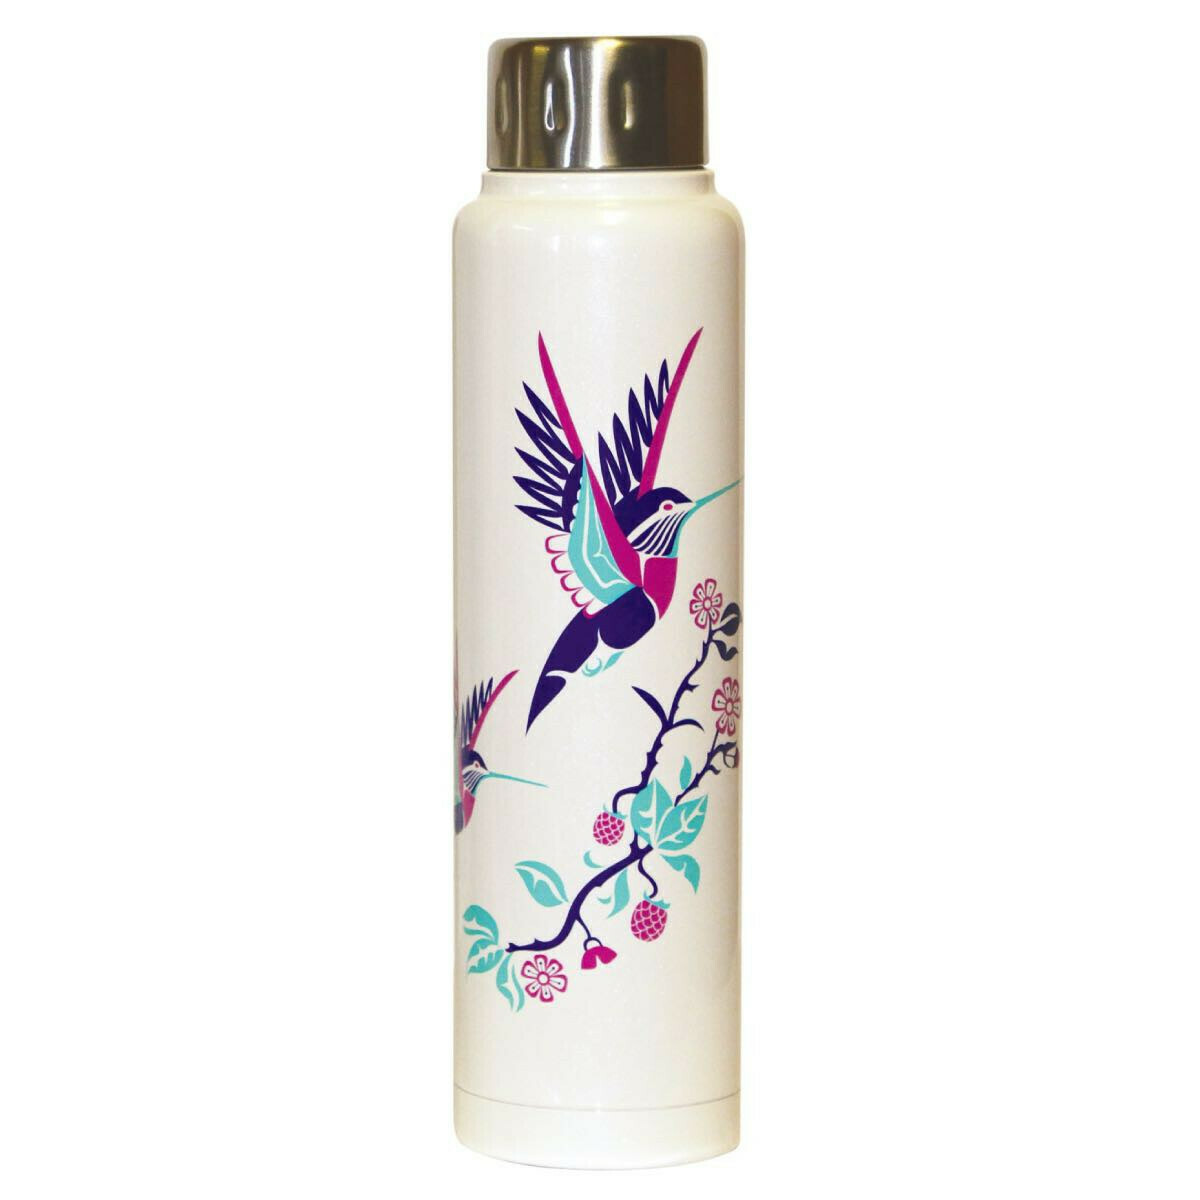 Insulated Totem Water Bottle - Hummingbird